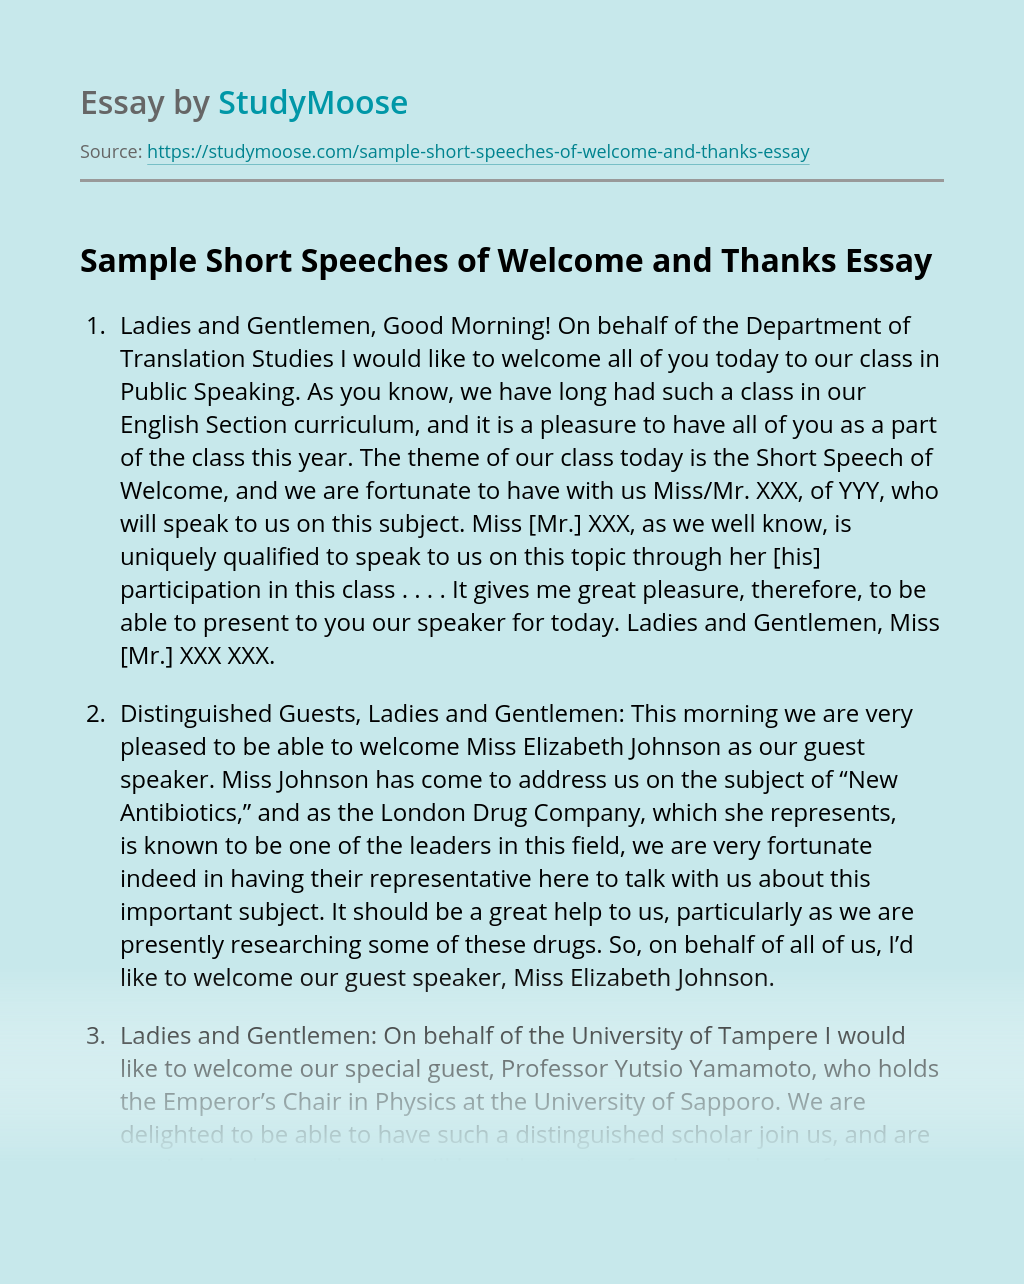 Sample Short Speeches of Welcome and Thanks